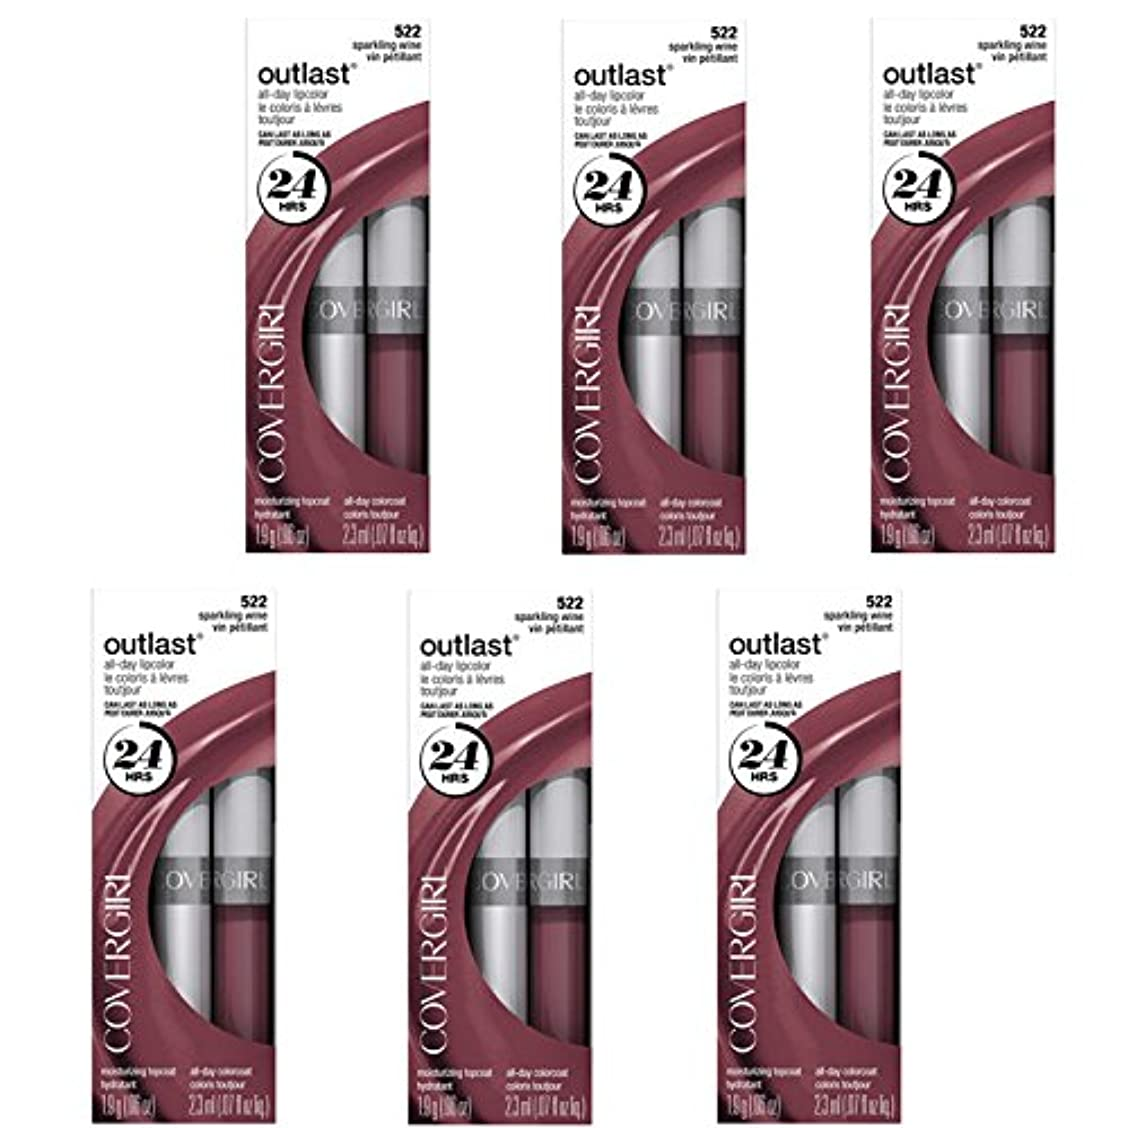 四マイナス免疫するCOVERGIRL Outlast All-Day Moisturizing Lip Color 522 Sparkling Wine, 6/set, Discontinued [並行輸入品]